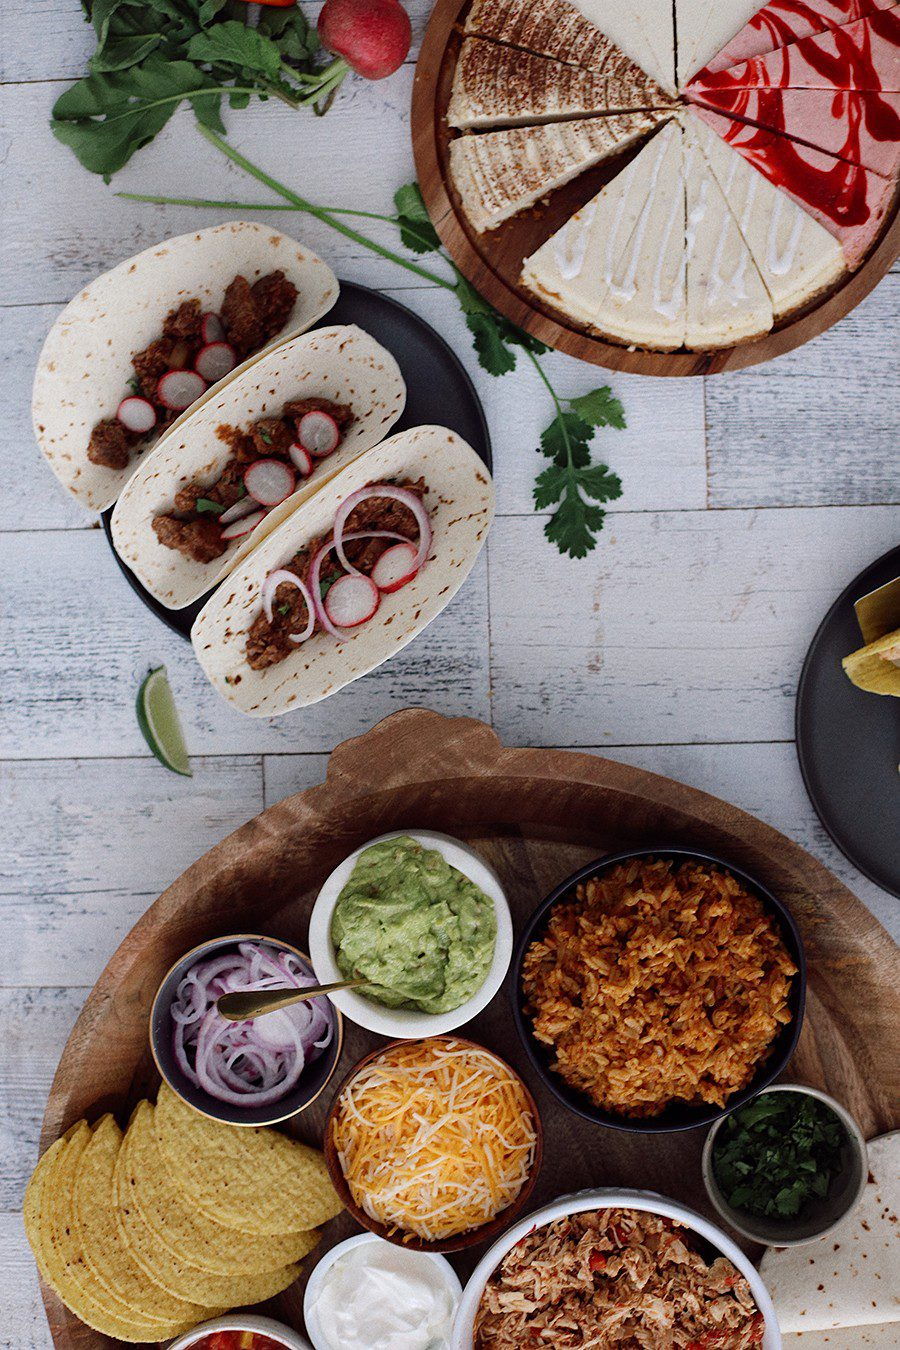 How to make an epic taco board and taco party platter tips! Plus, the best slow cooker taco chicken recipe! | Chicken Tacos by popular Florida lifestyle blog, Fresh Mommy Blog: image of pork barbacoa tacos, chicken taco platter, and cheesecake sampler.